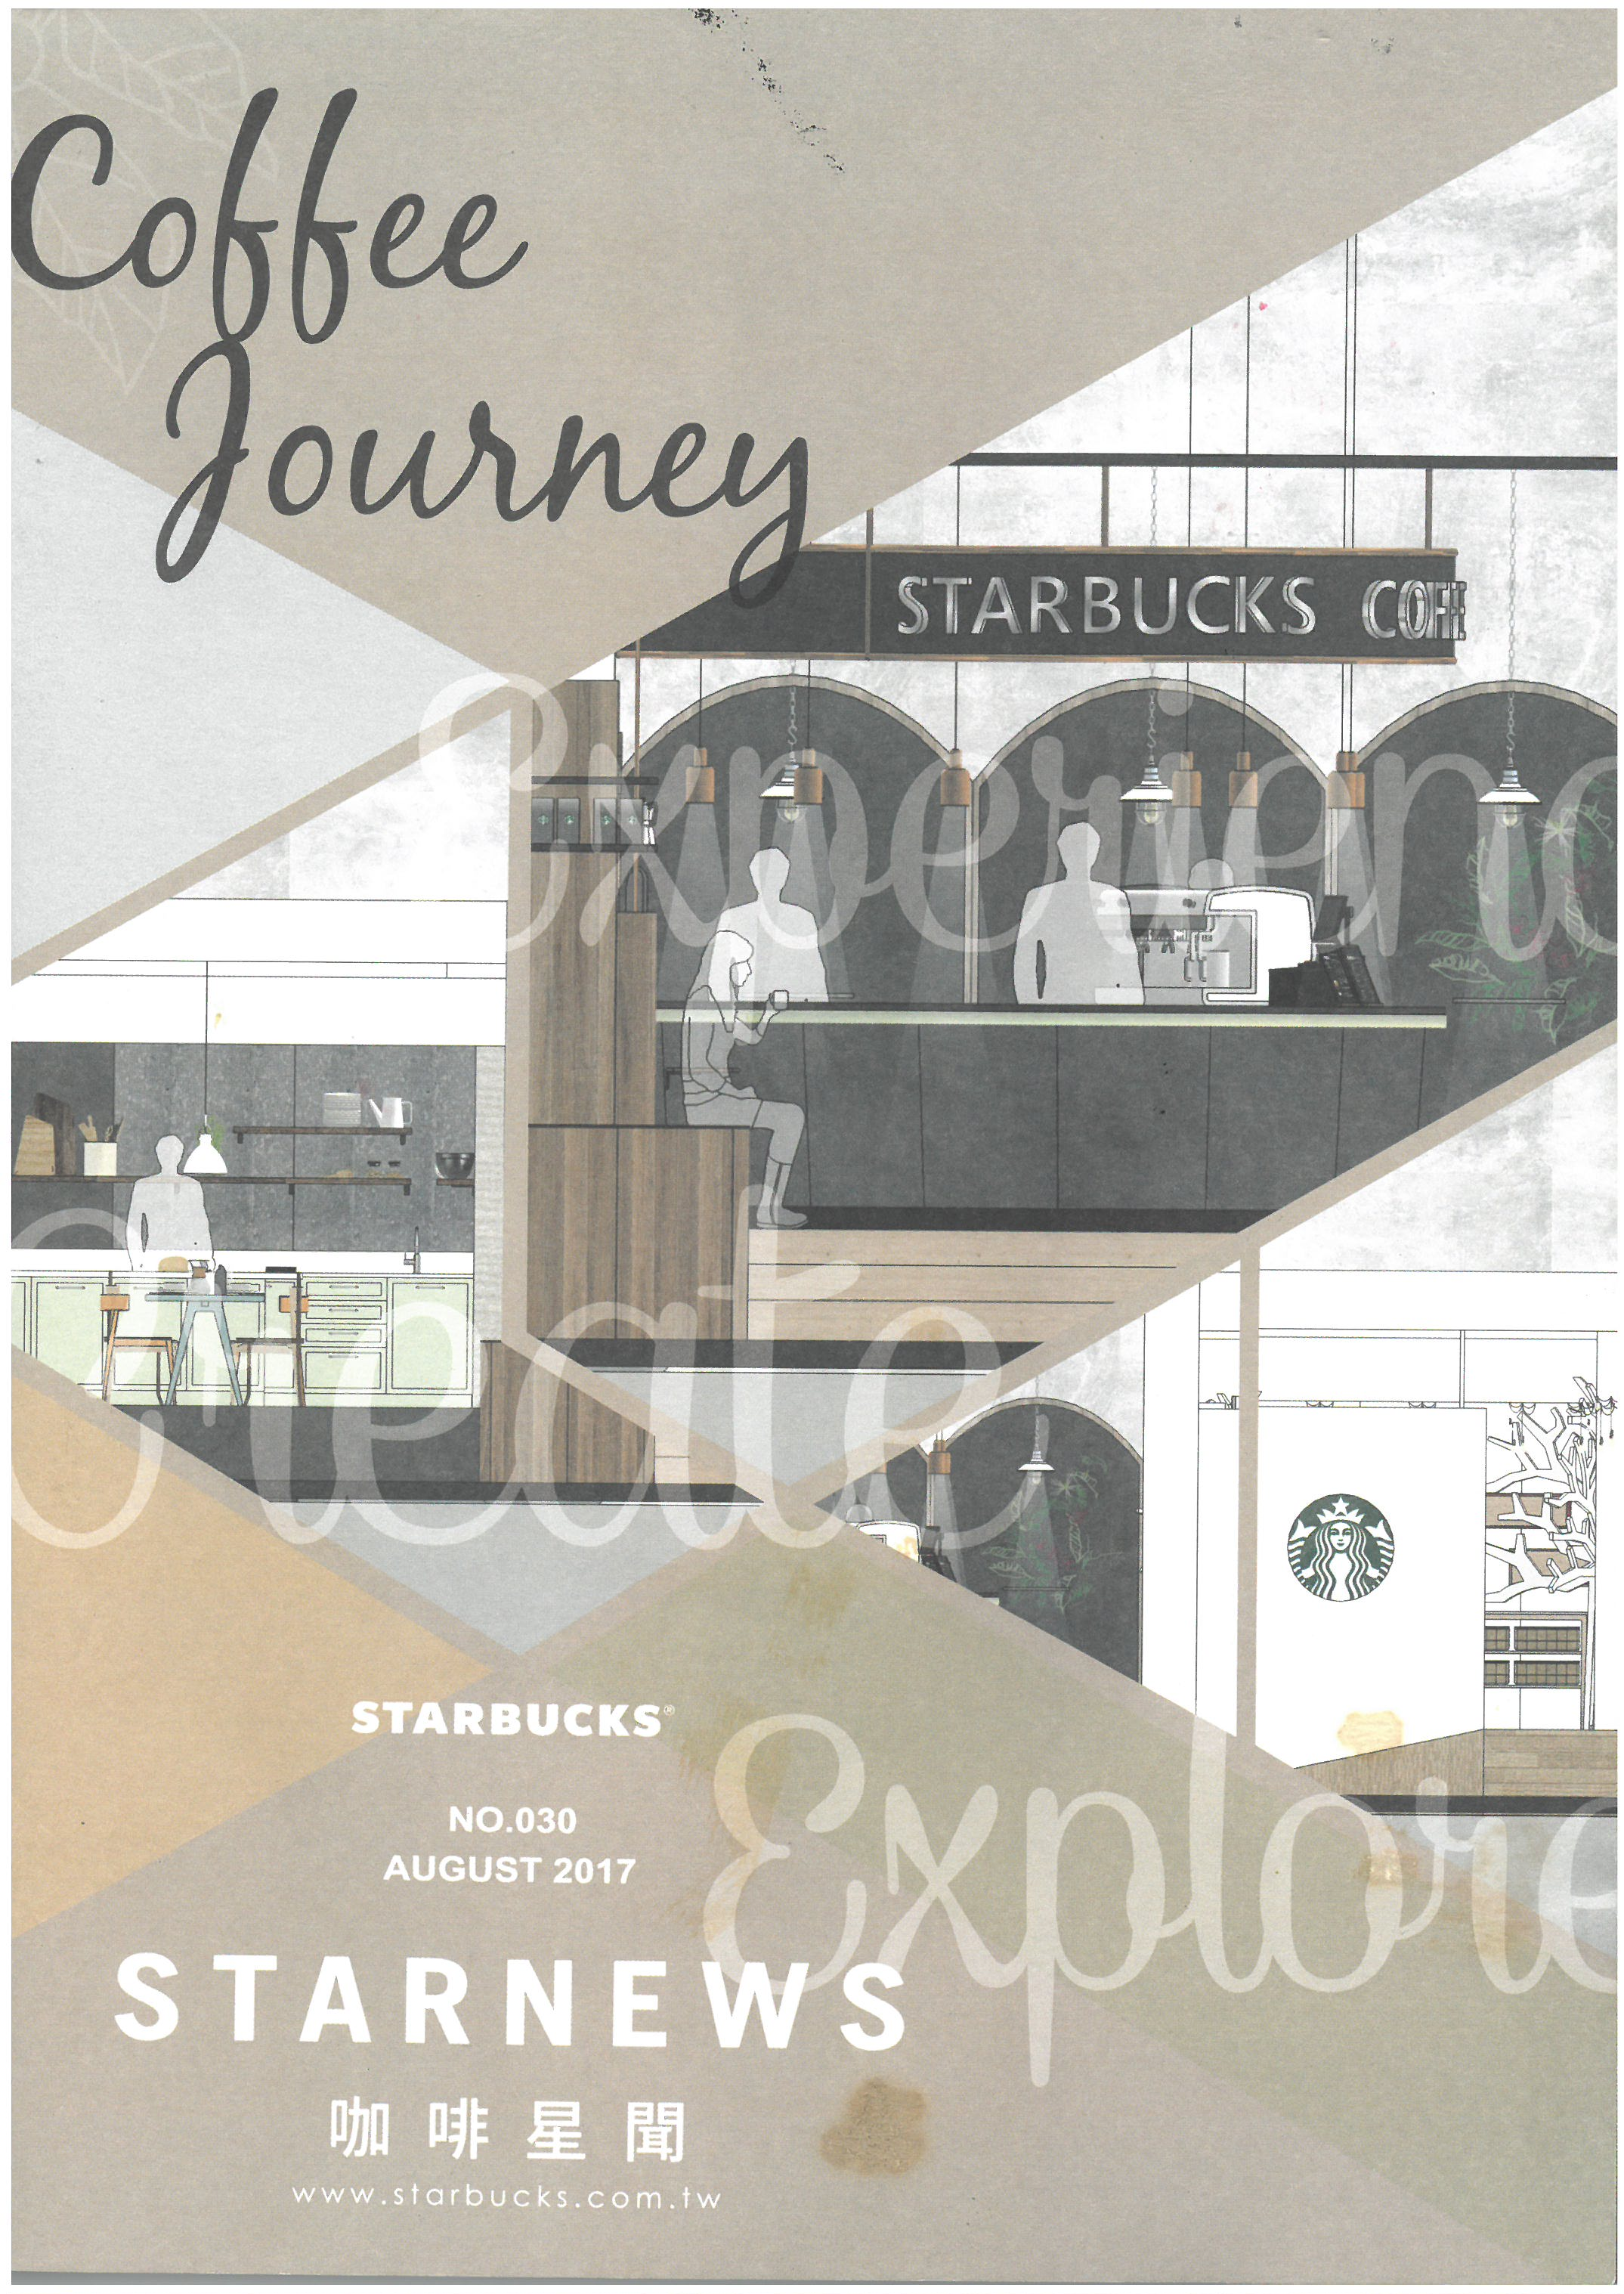 Press-starbucks1.jpg